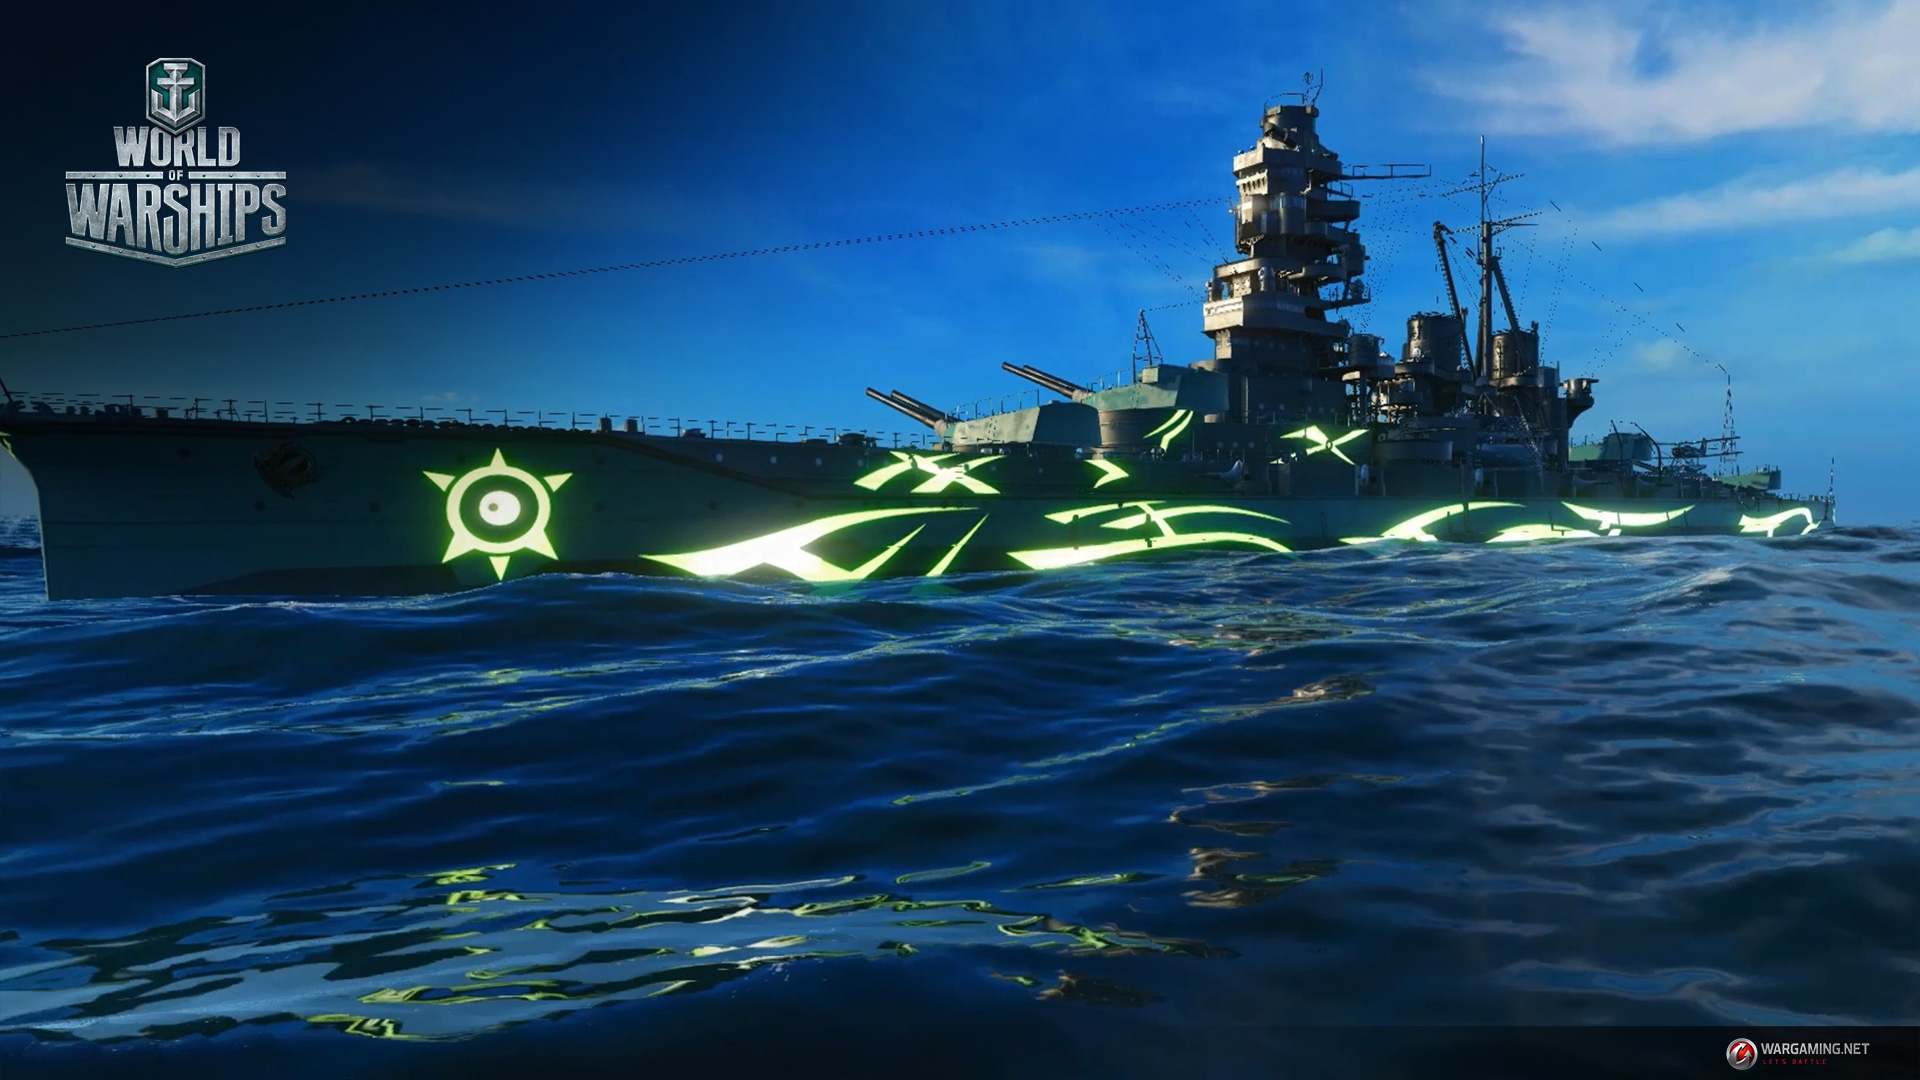 Another Anime Wallpaper World Of Warships Will Soon Get Anime Inspired Game Mode